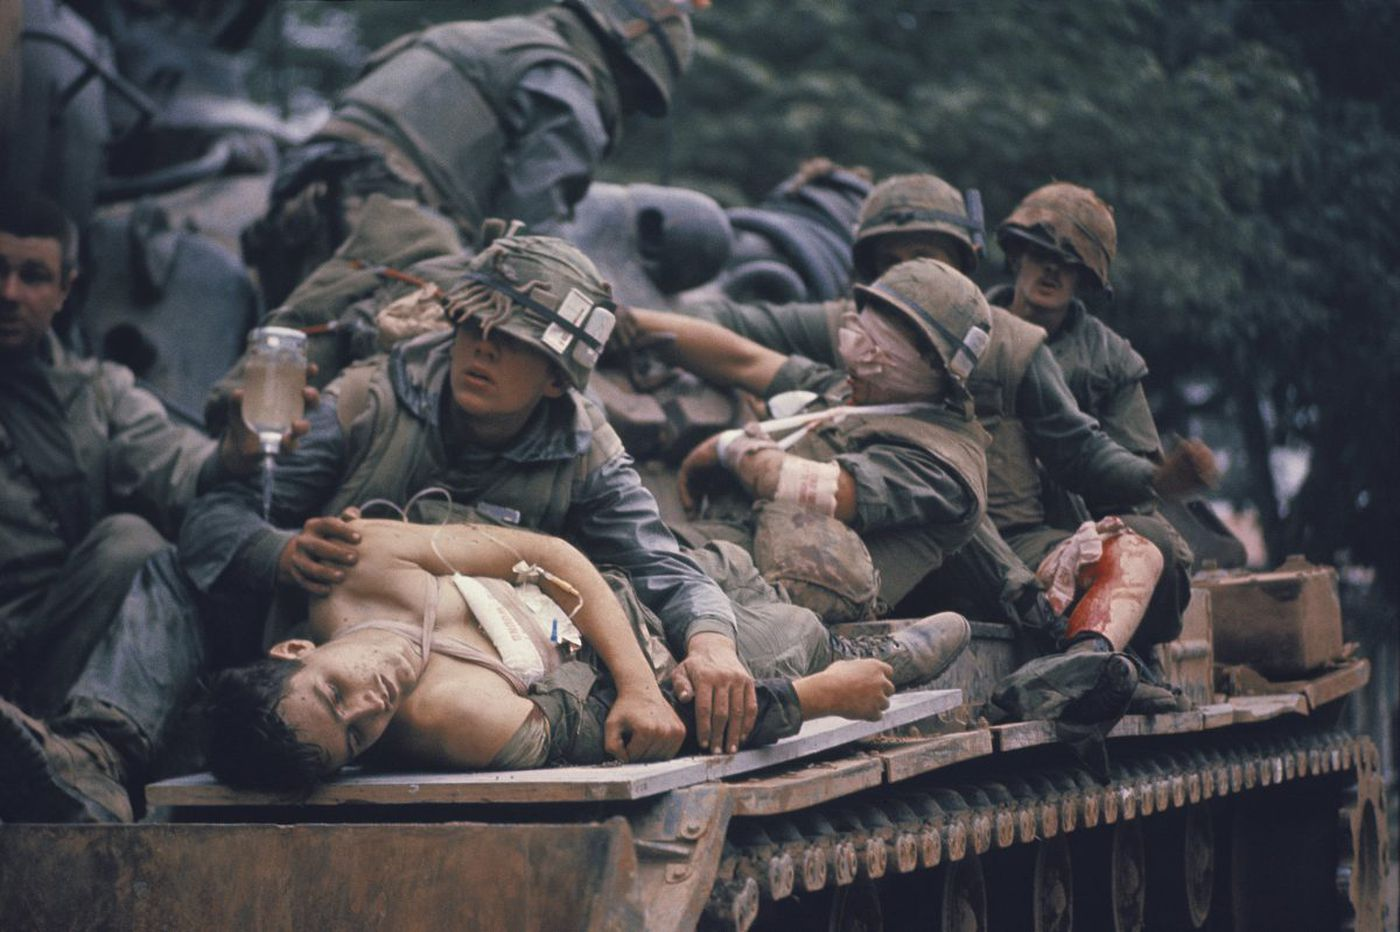 Mark Bowden: Through the fog of the Vietnam War, getting the Hue story right